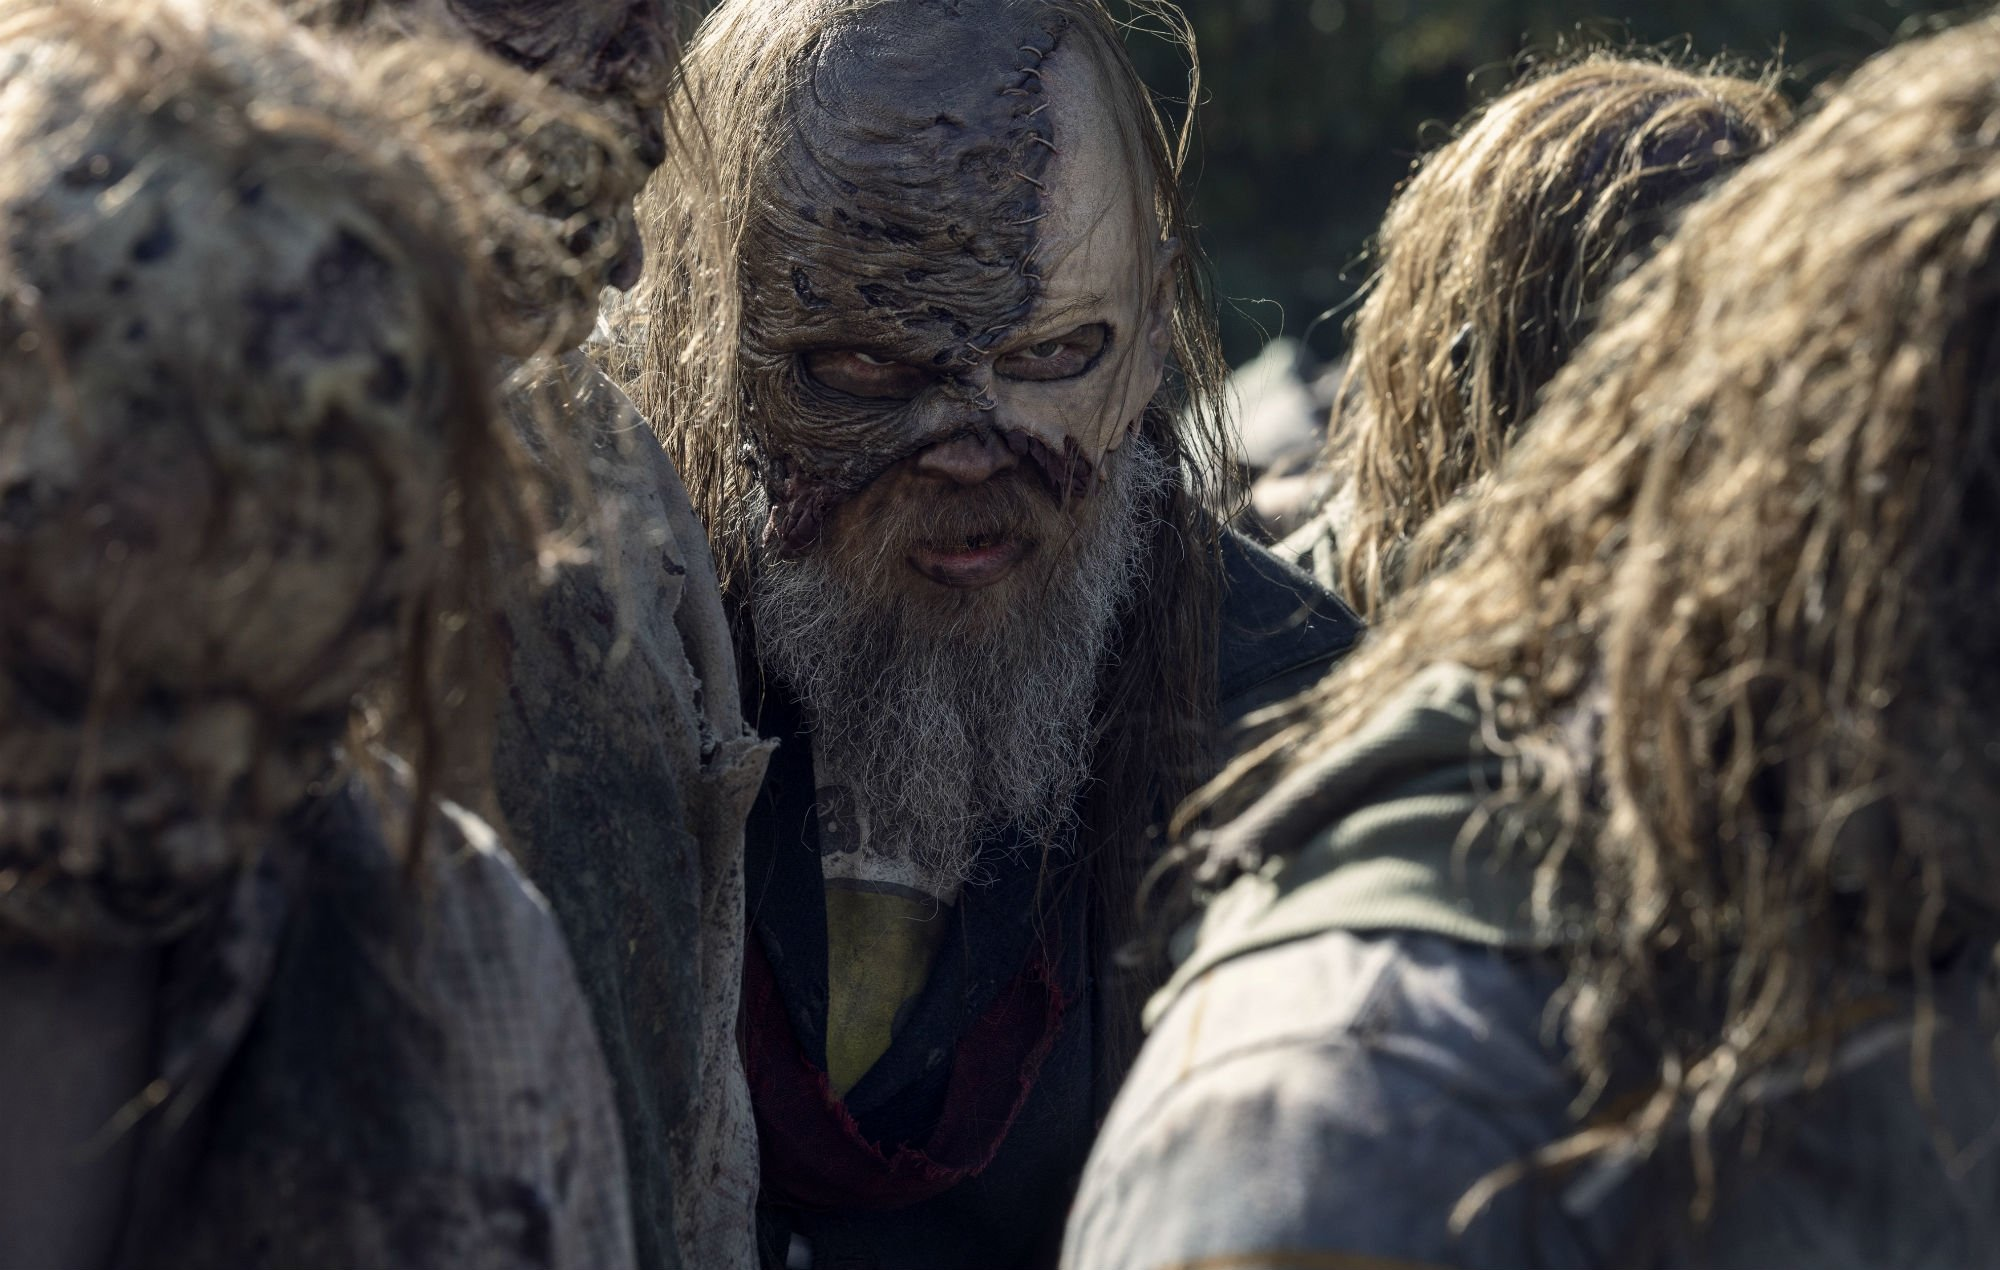 Beta, played by Ryan Hurst, in a scene after the death of Alpha in